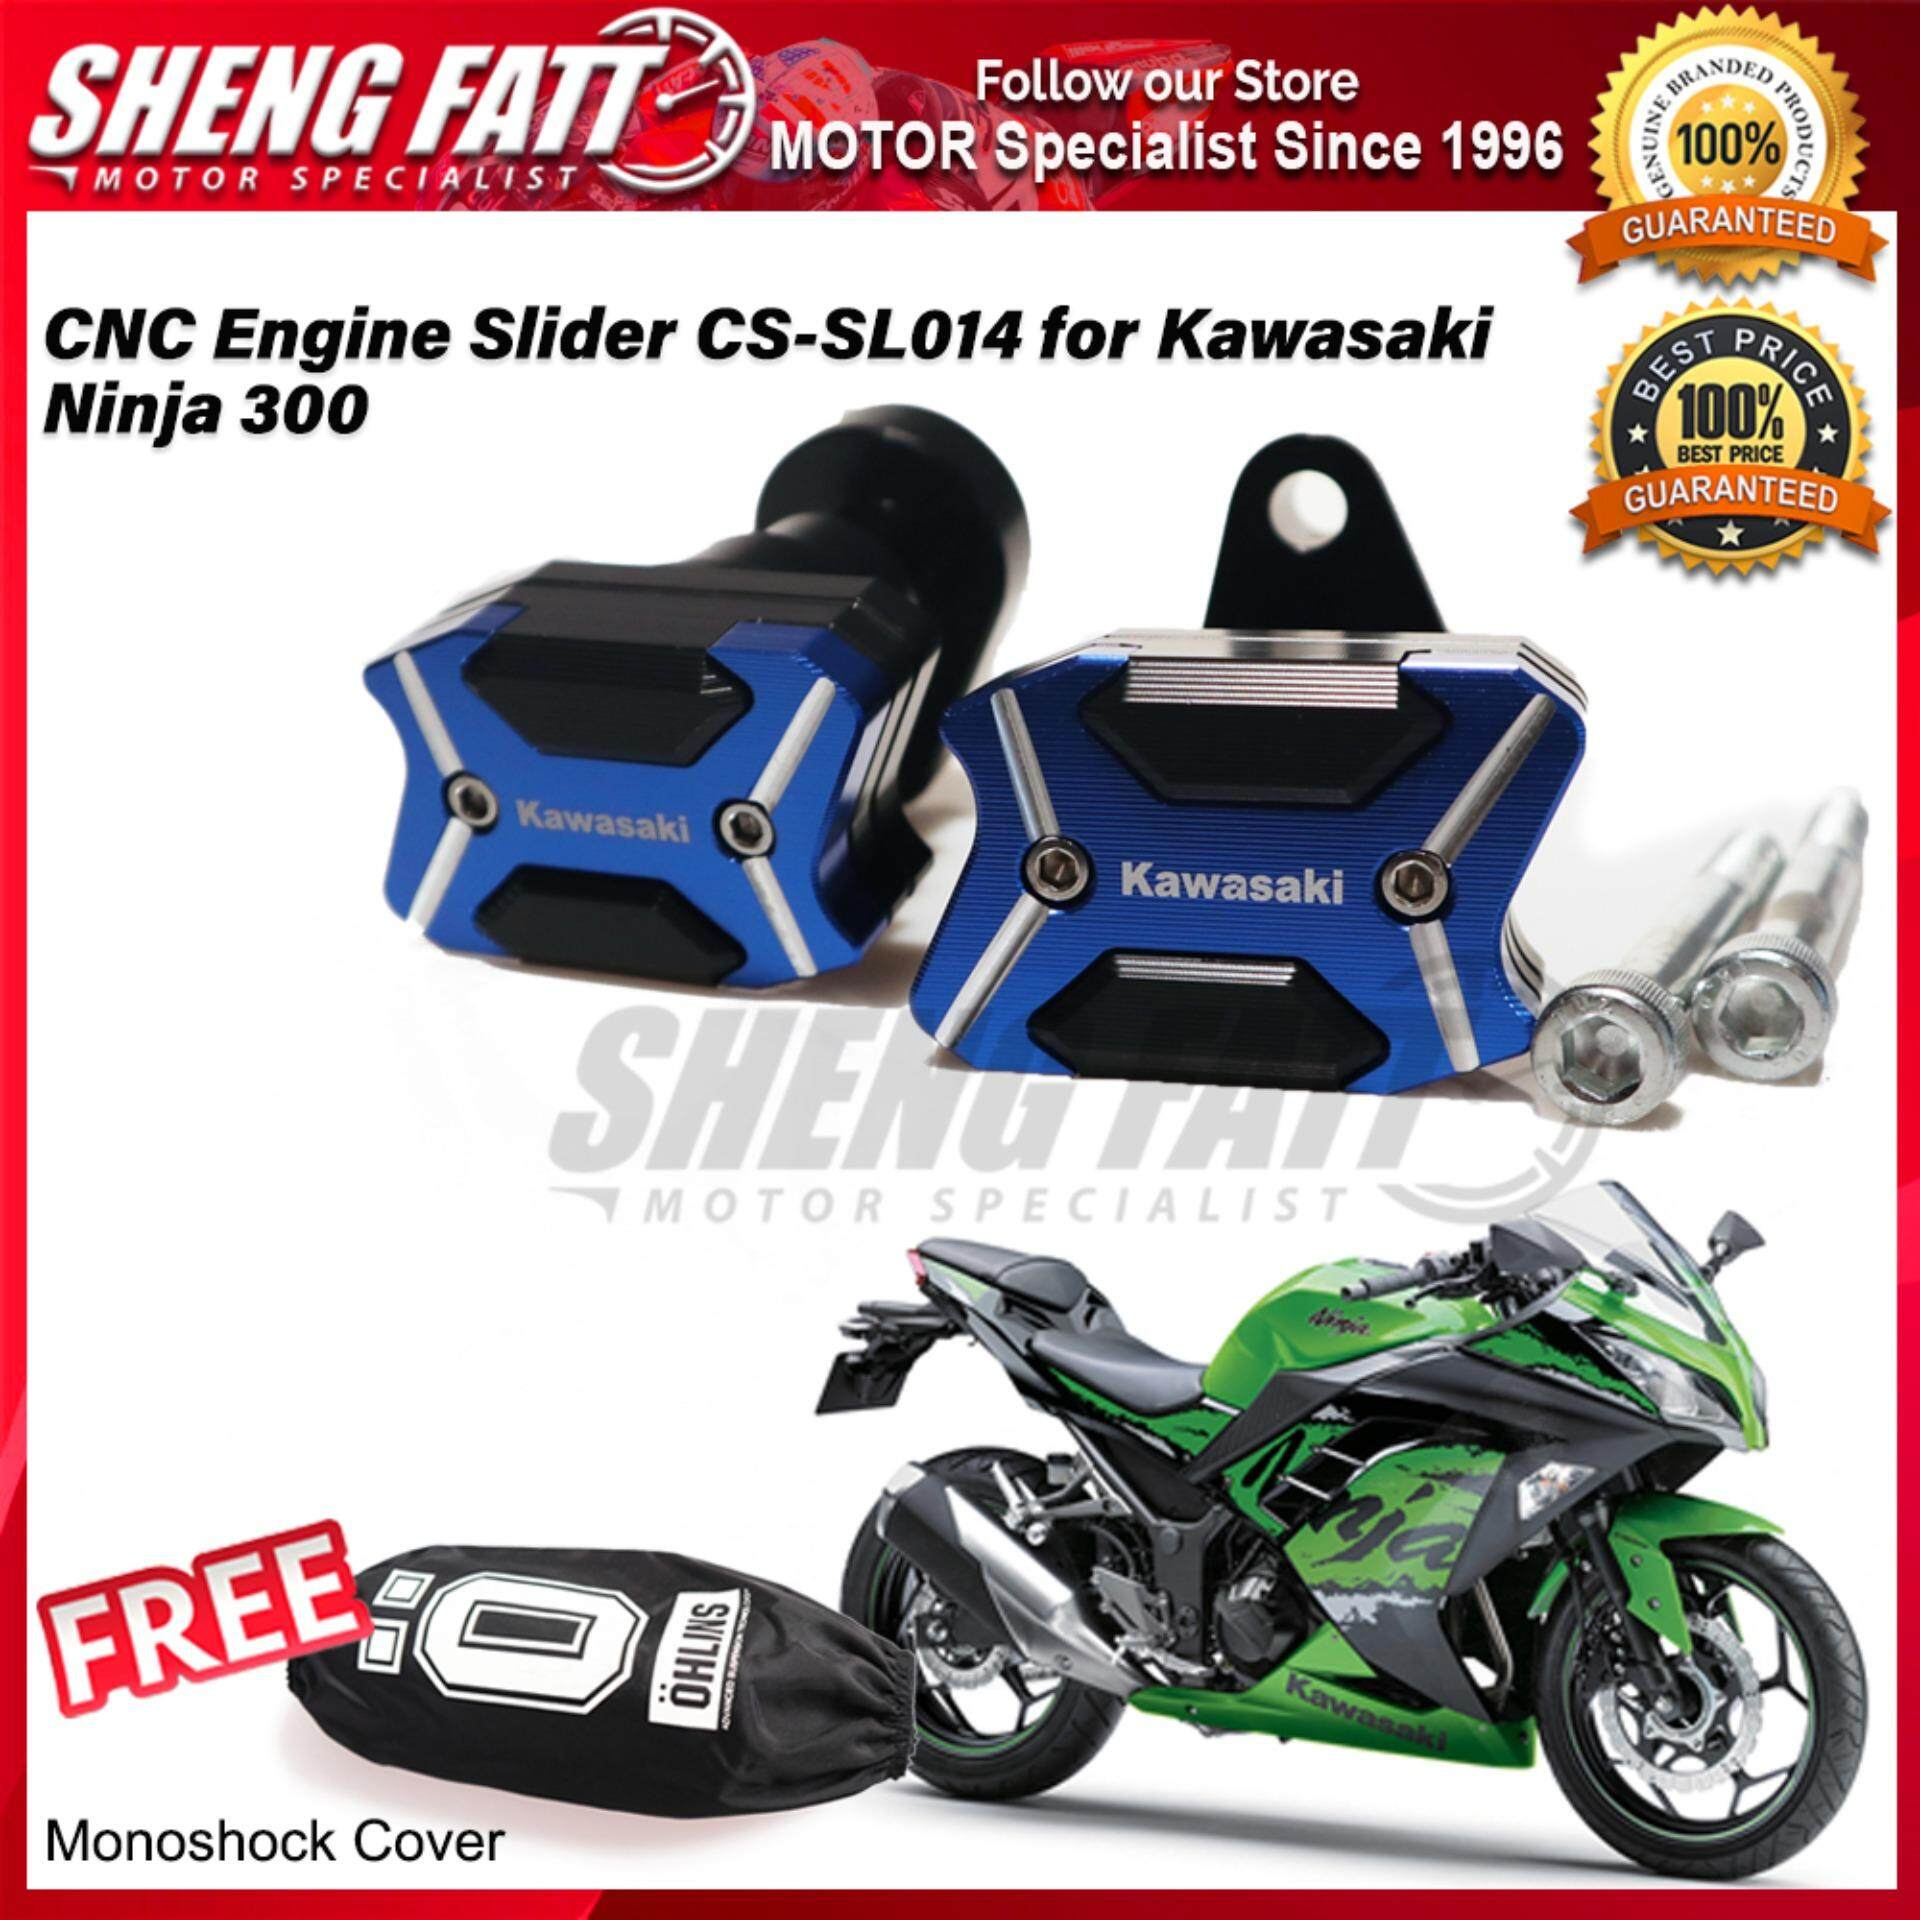 CNC Engine Slider CS-SL014 for Kawasaki Ninja 300 FREE Mono Shock Monoshock Cover